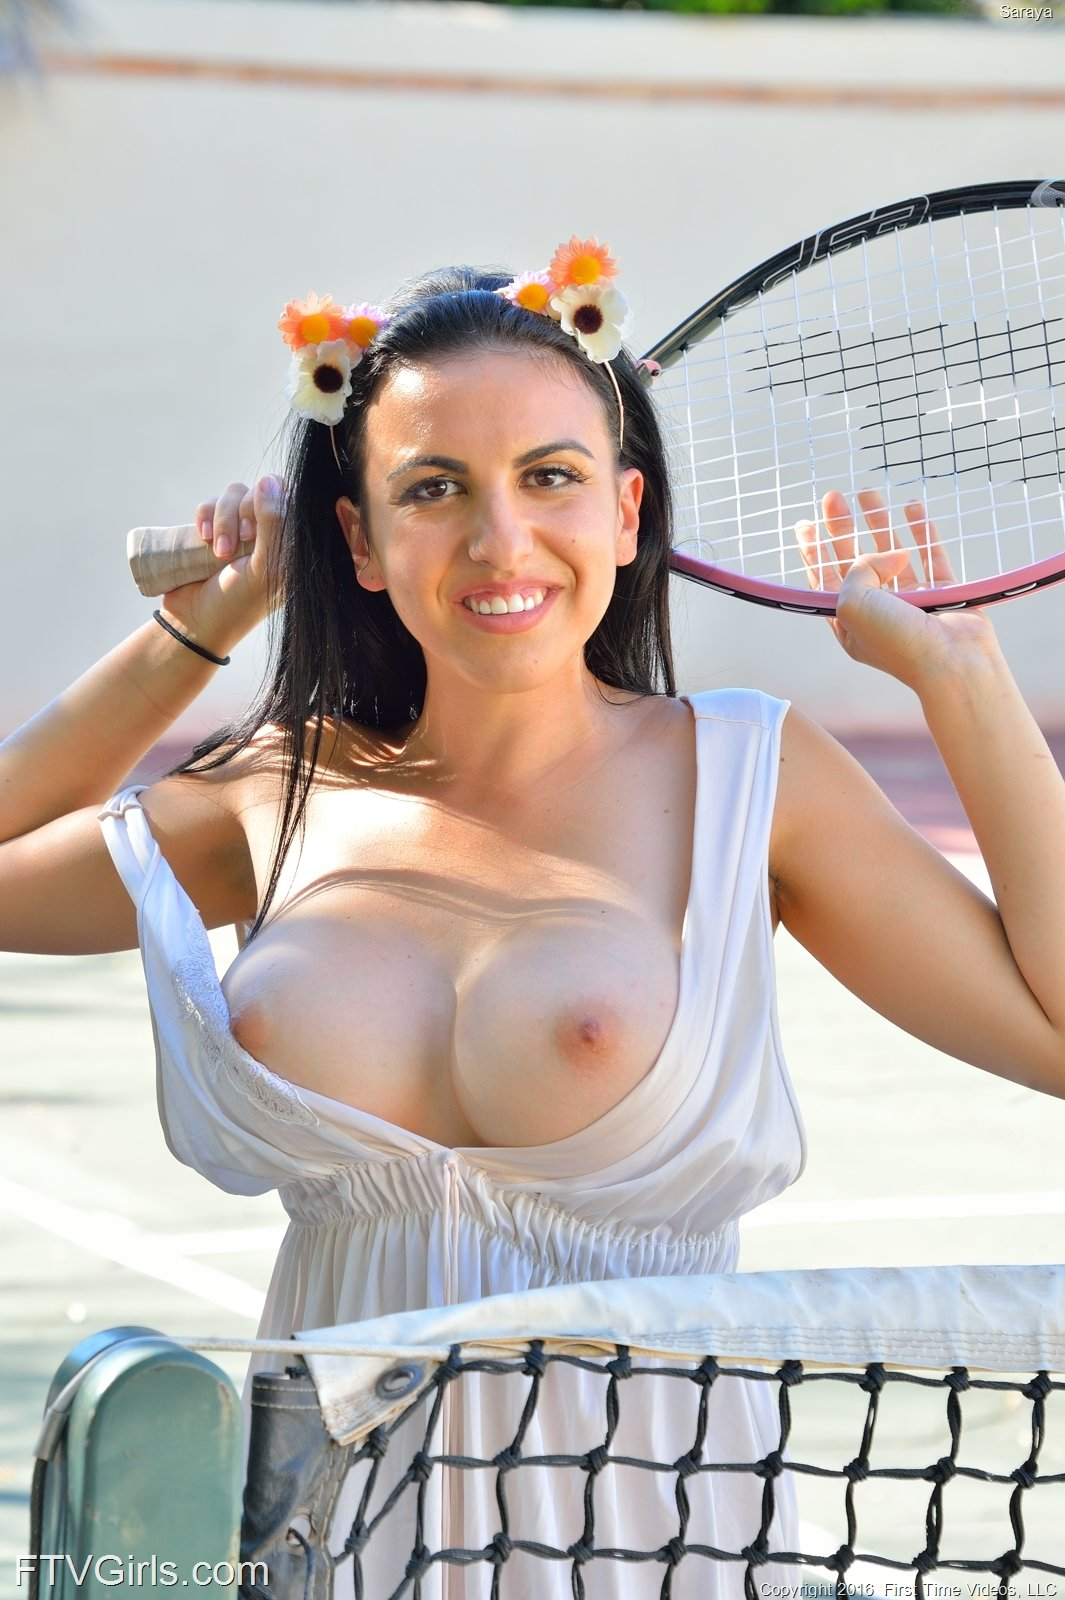 Saraya in On The Courts by FTV Girls (12 photos + video ...